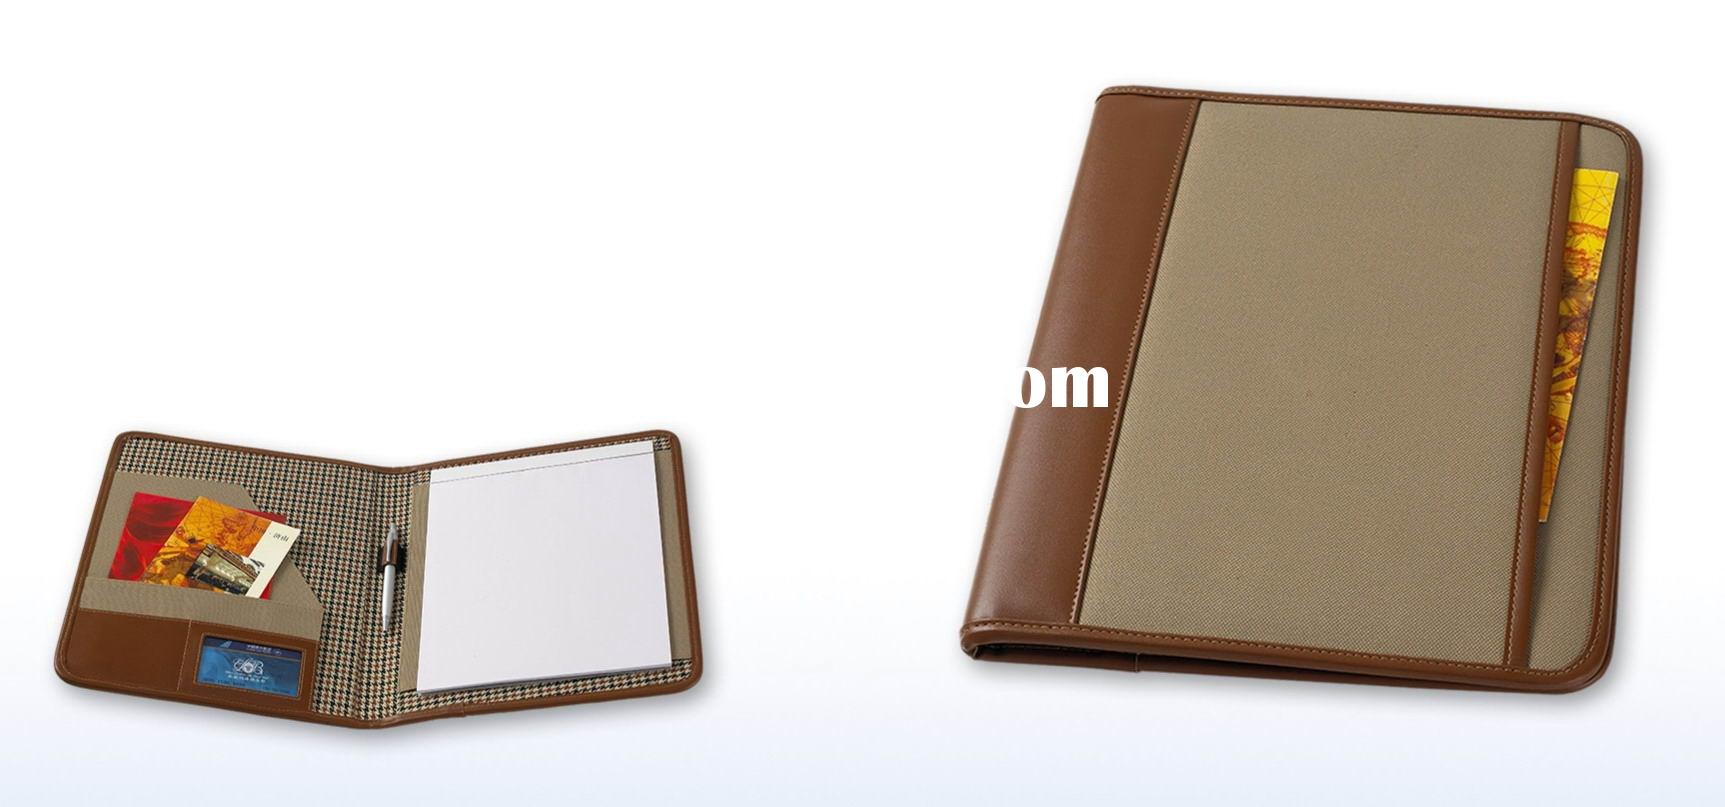 Padfolio(File Folder, Clip Folder, Leather folder, Portfolio)